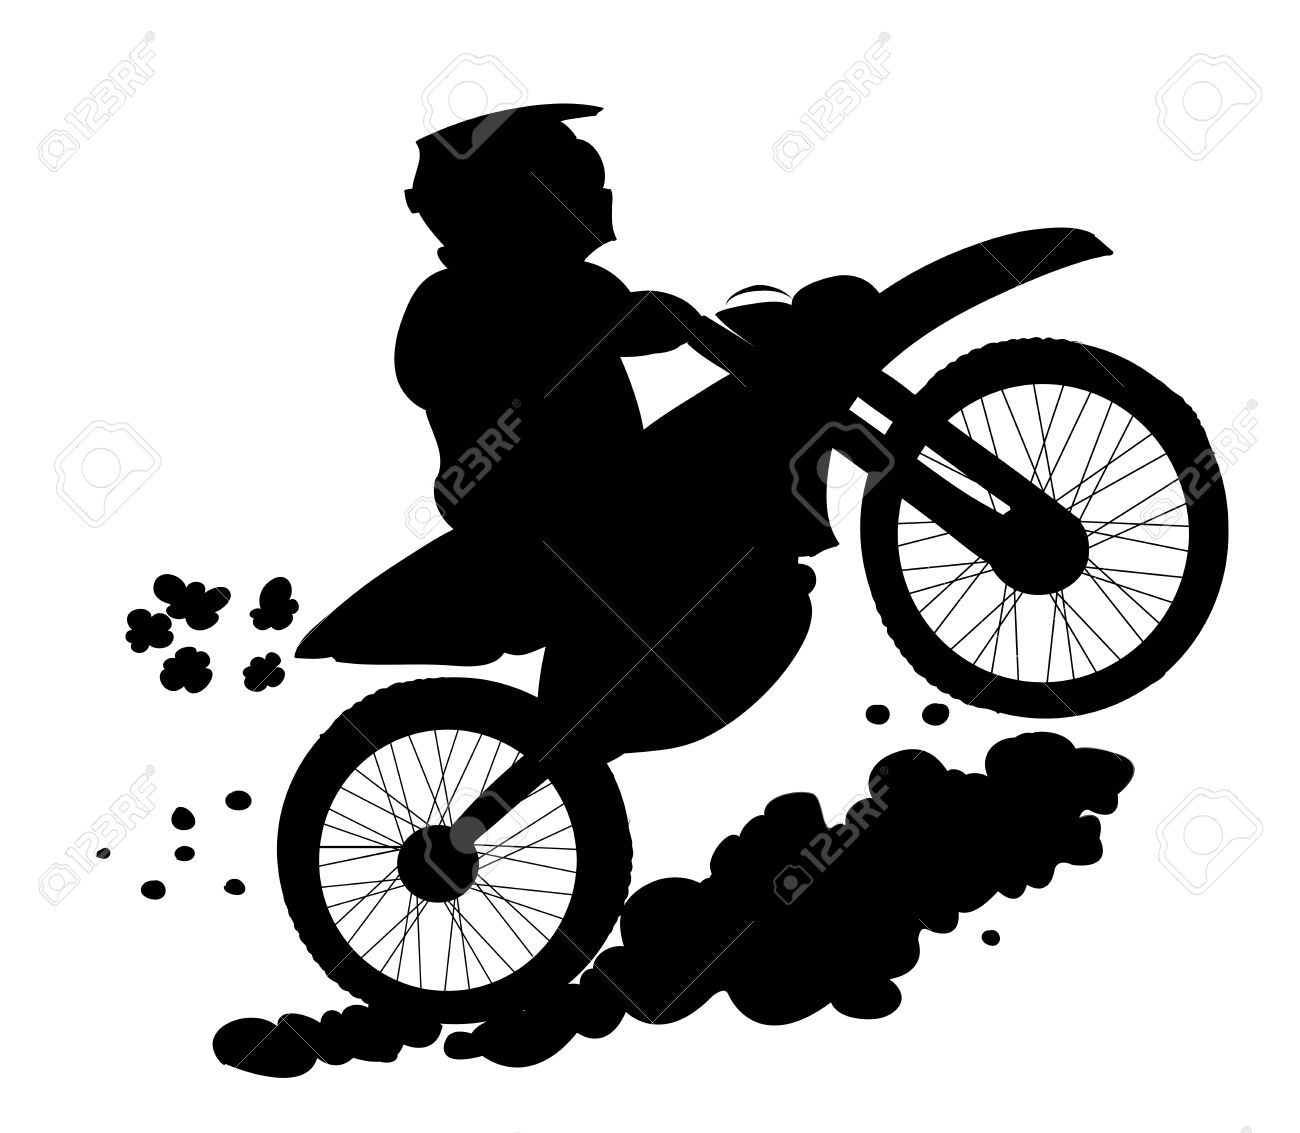 Enduro Biker Silhouette Royalty Free Cliparts, Vectors, And Stock.